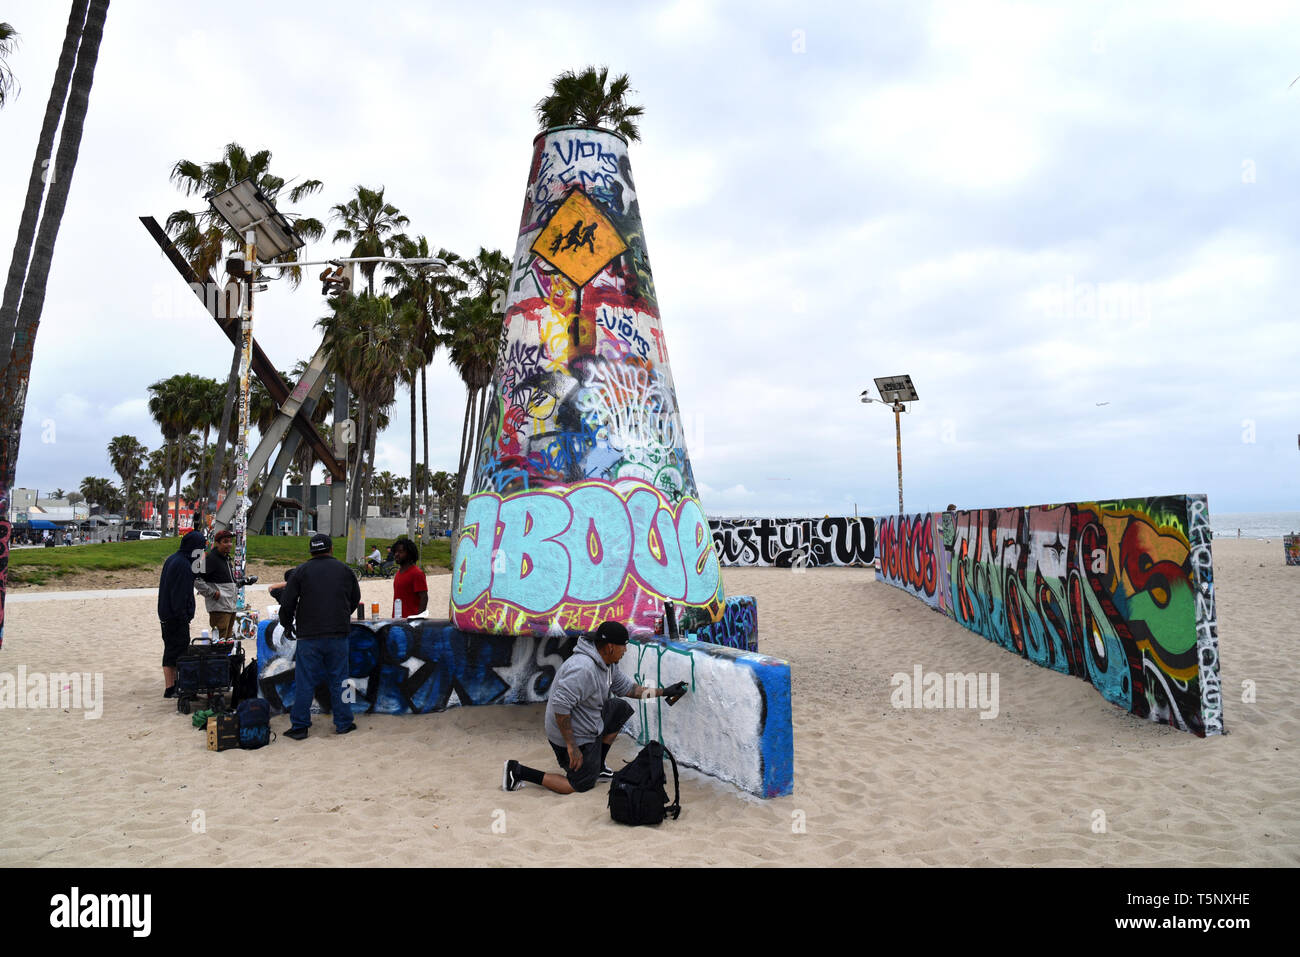 LOS ANGELES, CA/USA  - APRIL 19, 2019:  Taggers painting the famous Venice Beach graffiti walls on a hazy day - Stock Image